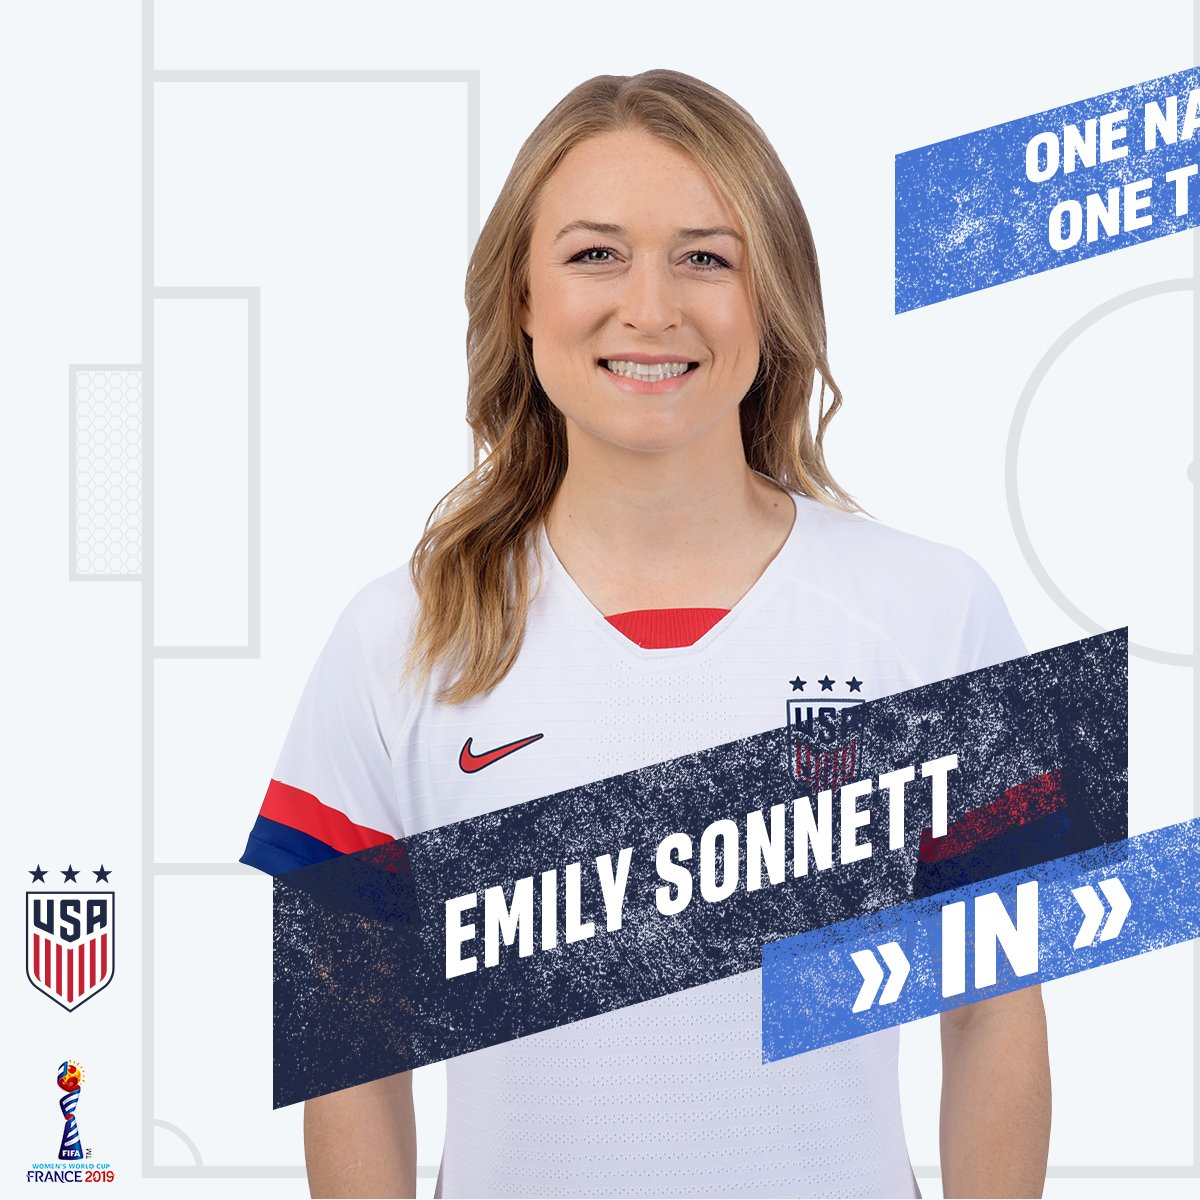 83   Final sub of the game for the #USWNT ➡️ @emilysonnett ⬅️ @AbbyDahlkemper #FIFAWWC